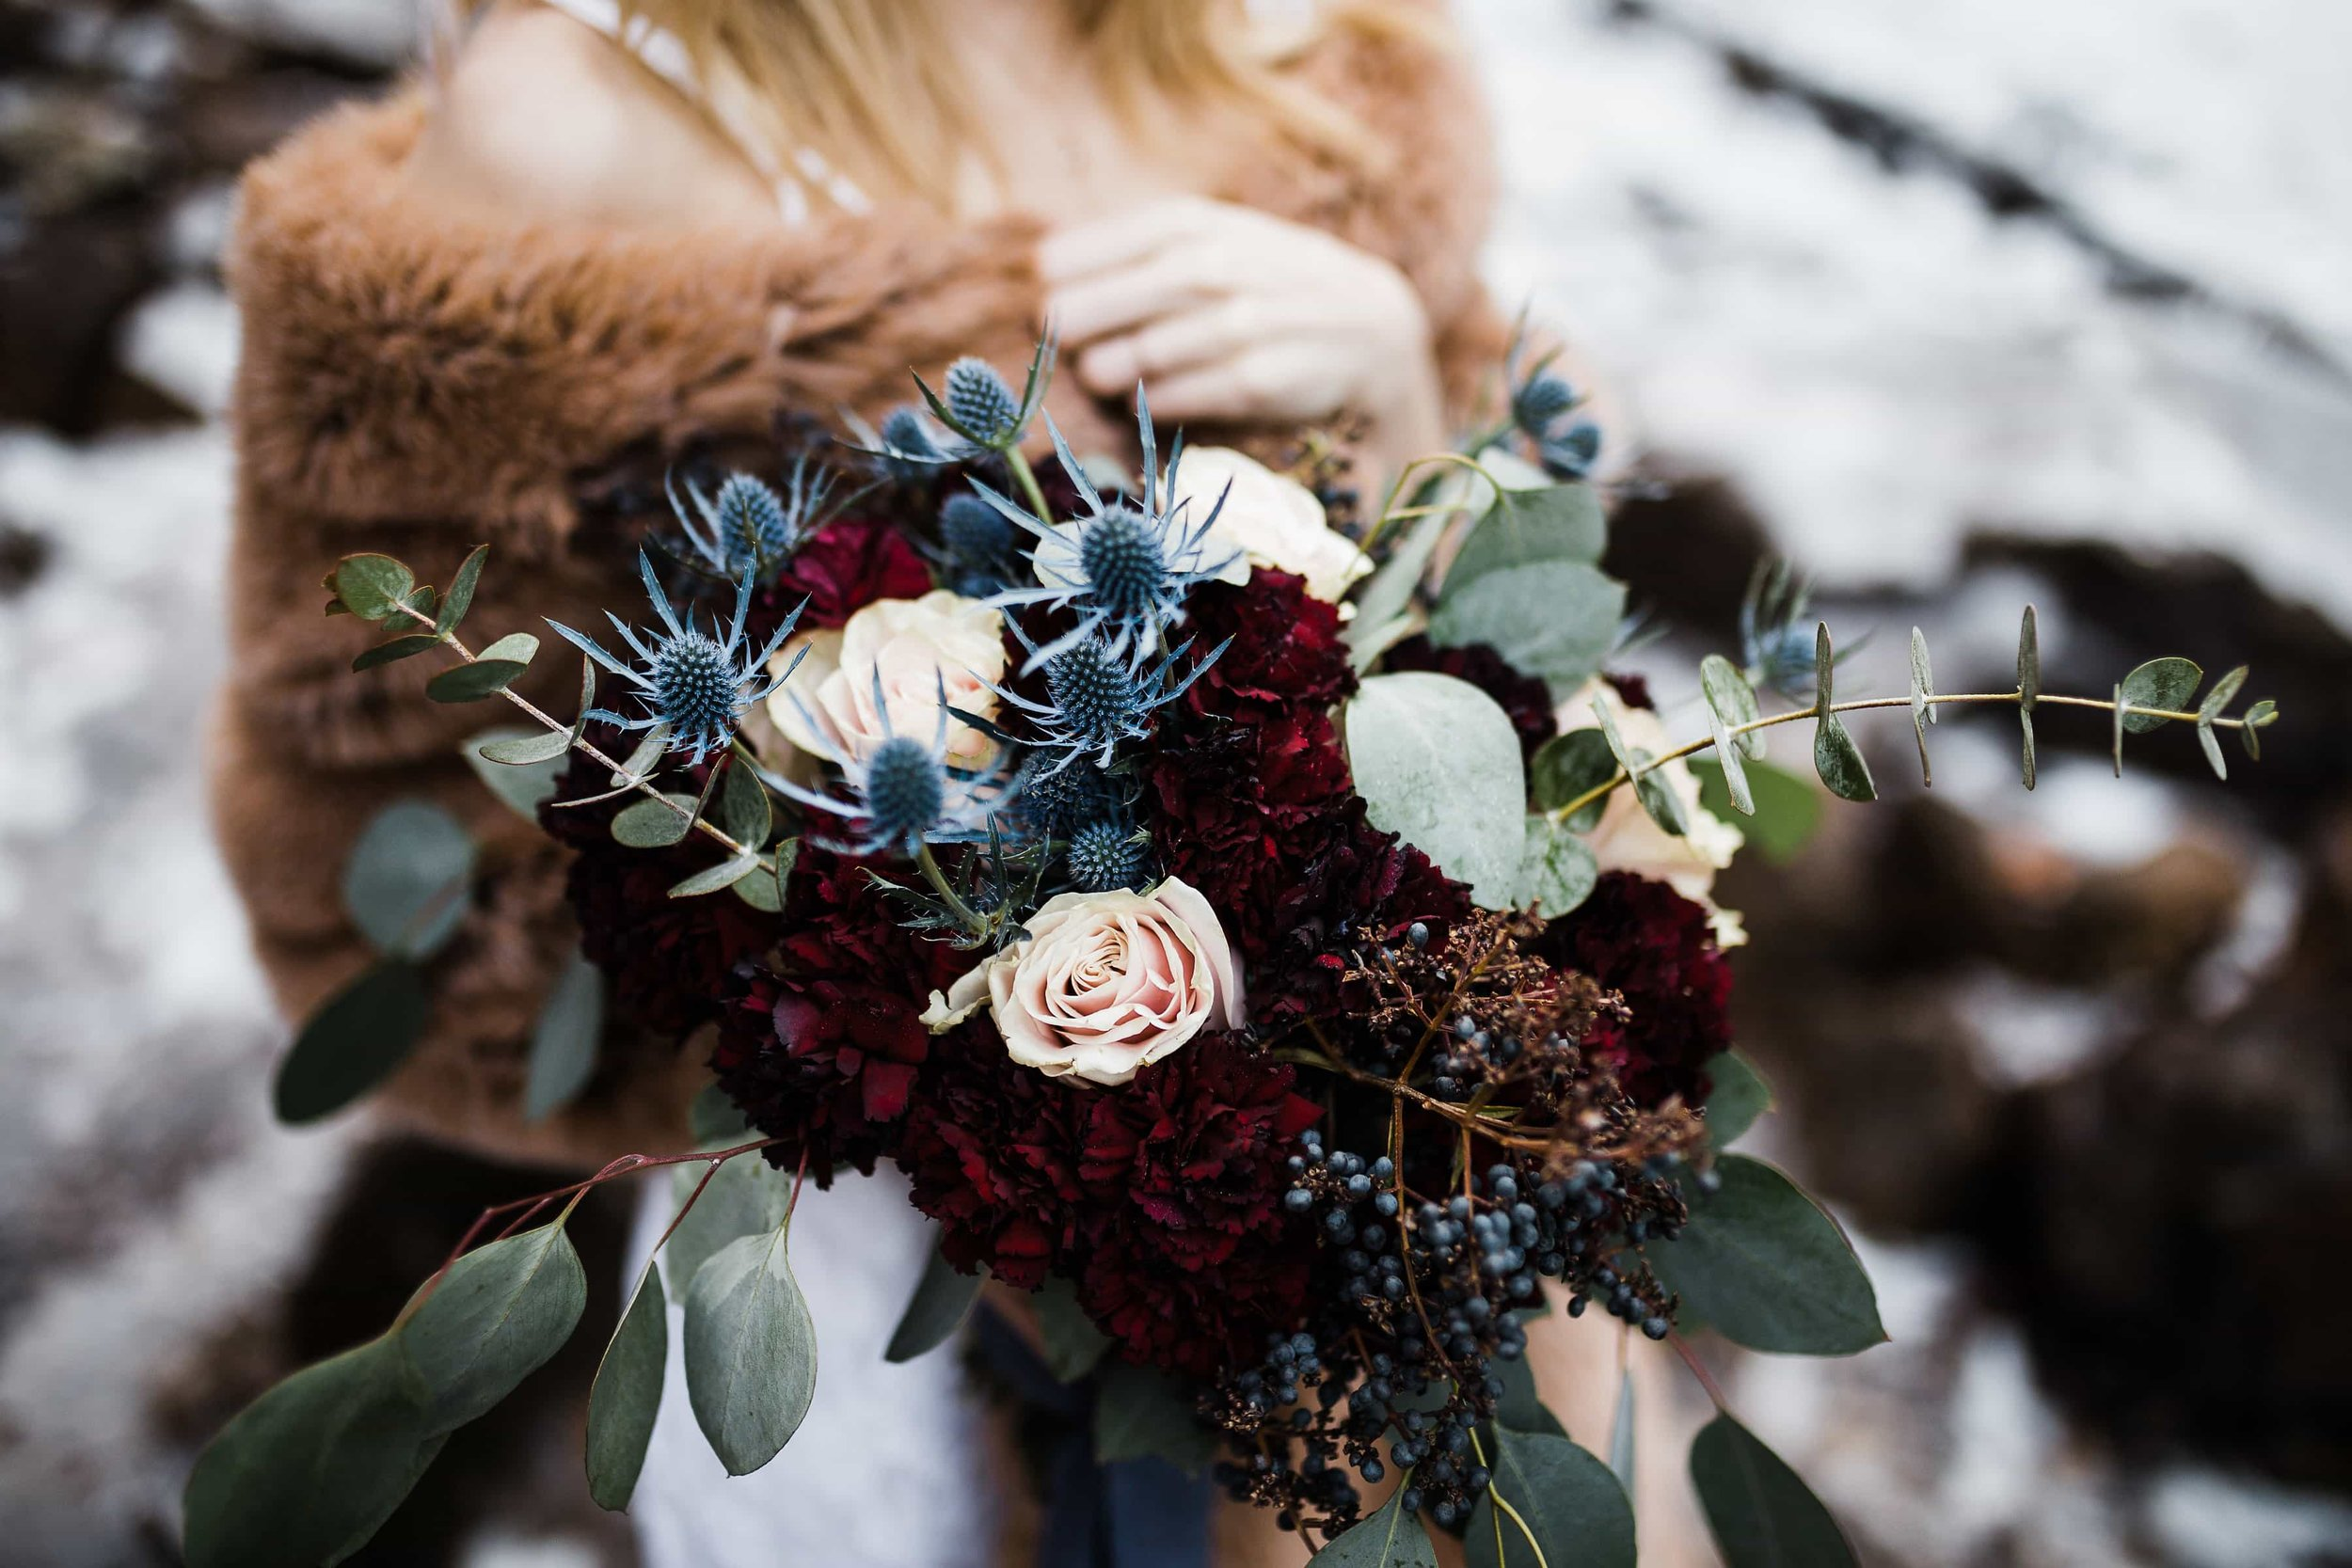 Floral Design - View More ➝